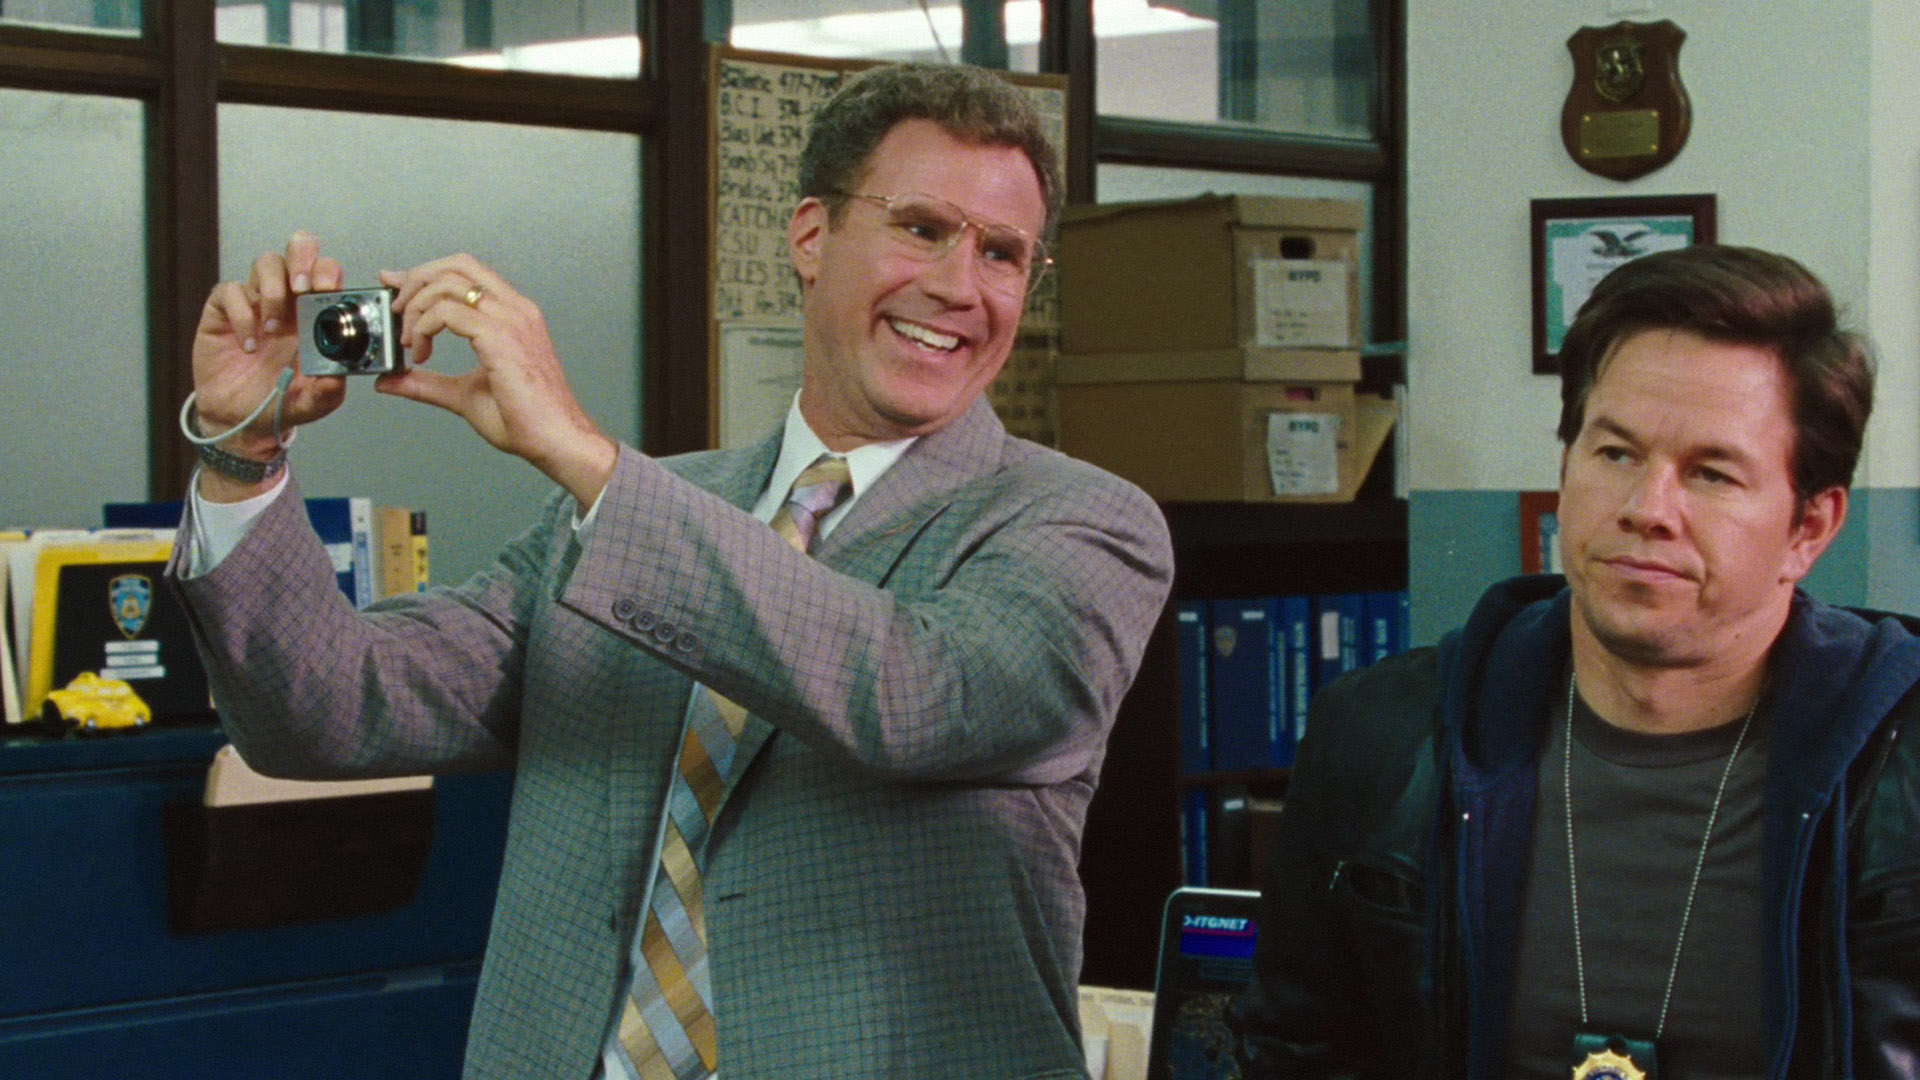 Gamble and Hoitz, The Other Guys (2010)